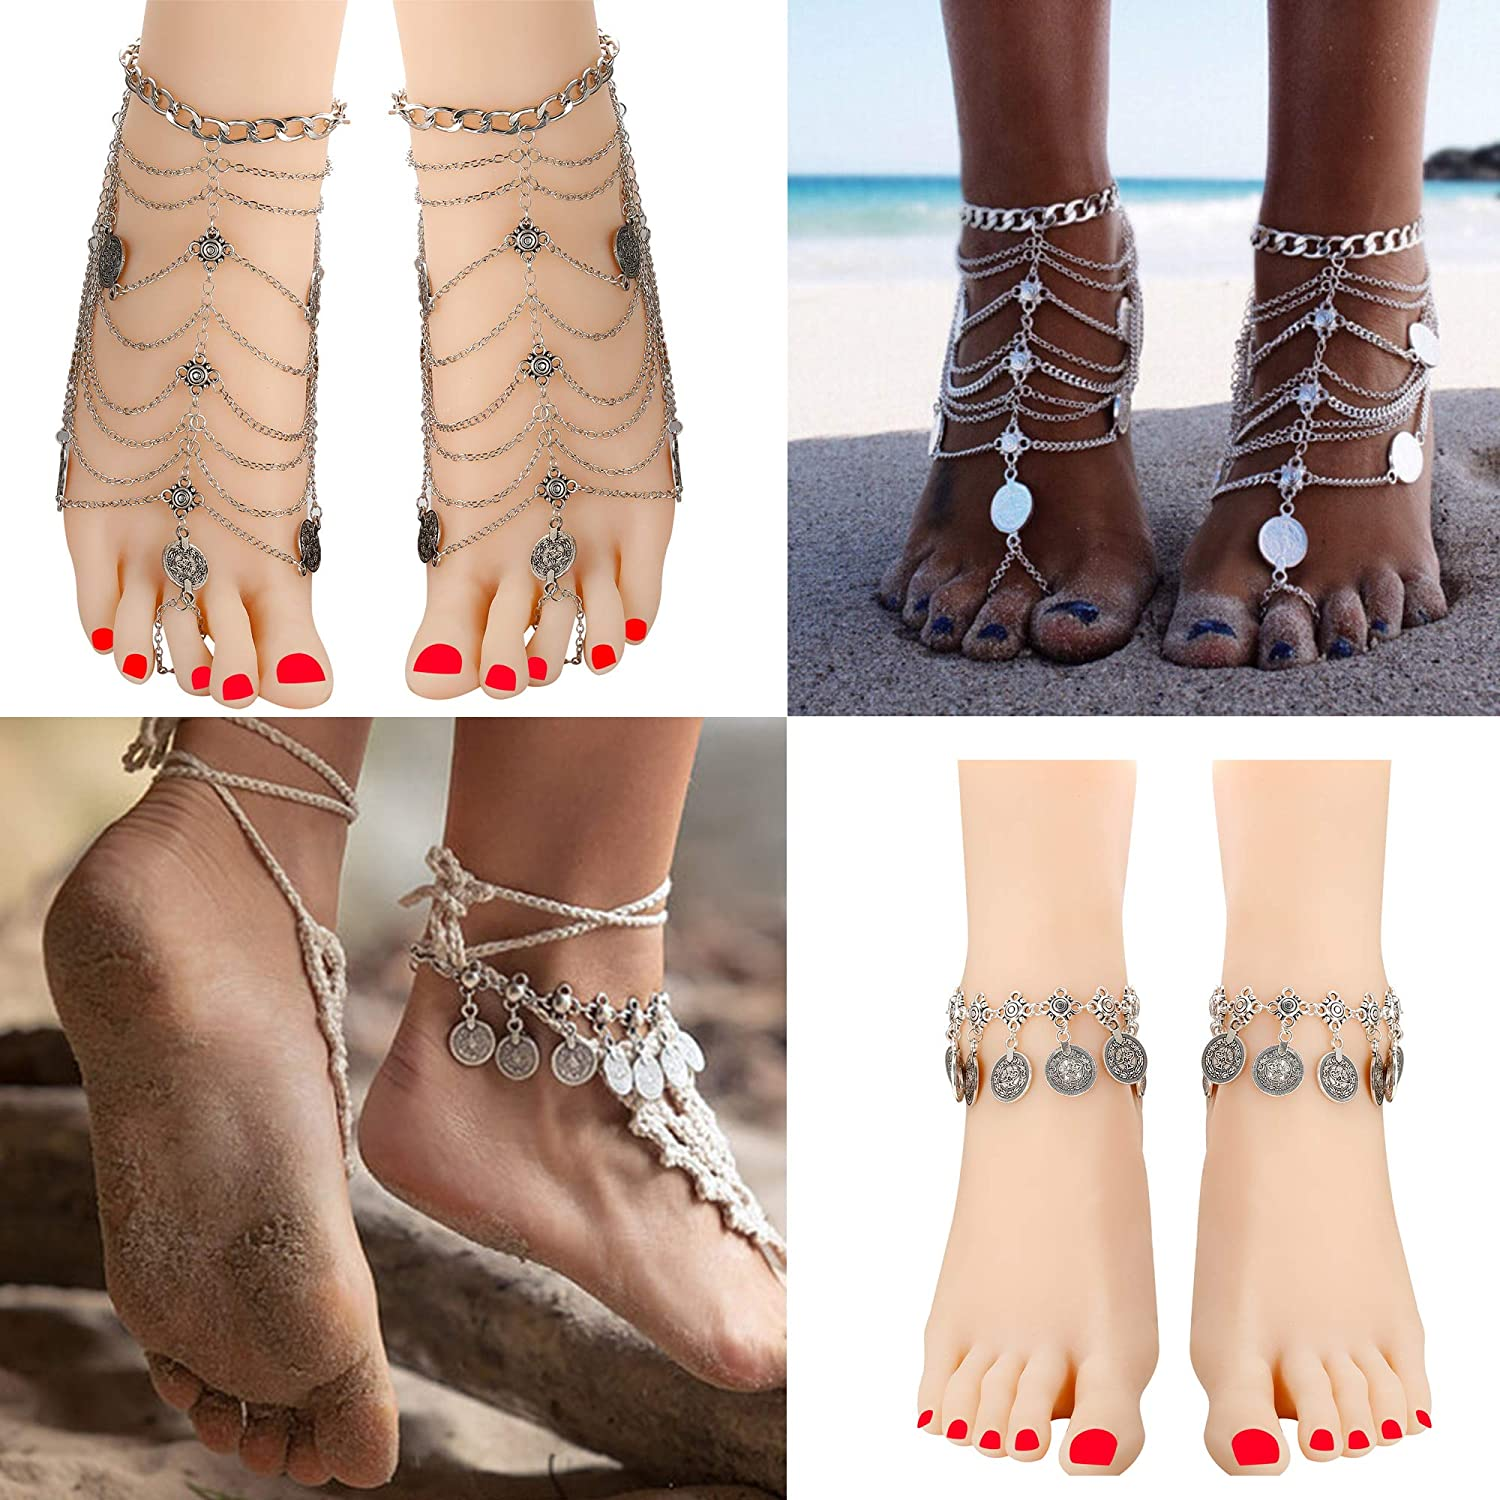 Jstyle 2Pairs Anklets for Women Girls Foot Jewelry Barefoot Sandles Beach Wendding Coin Tassel Silver Anklet Bracelet JL-178